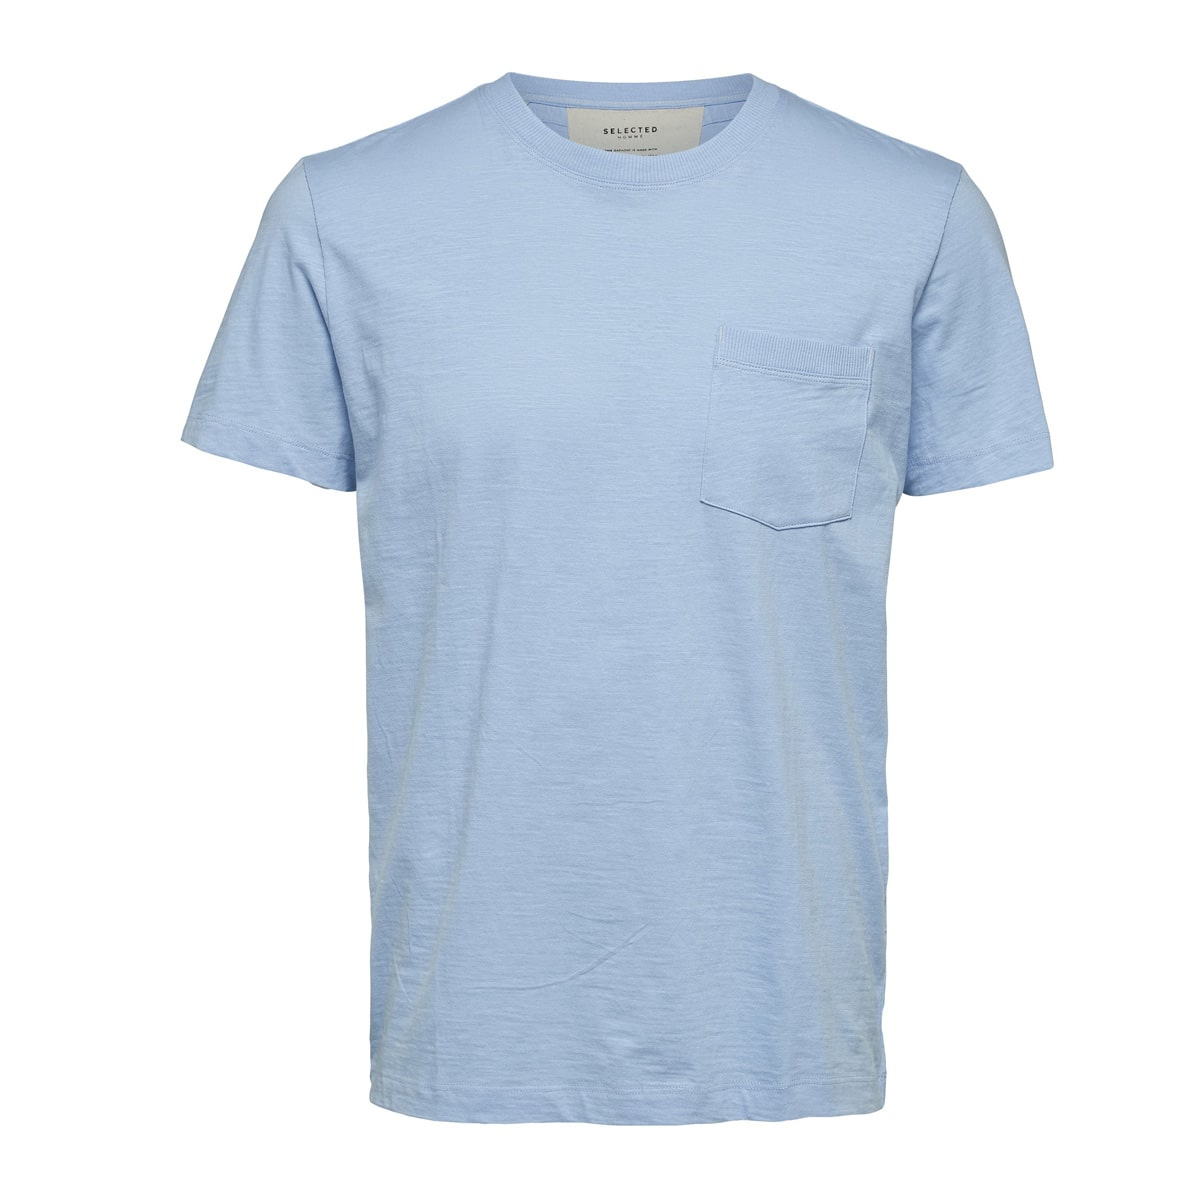 Jared Tee Cashmere Blue by Selected Homme   Restoration Yard